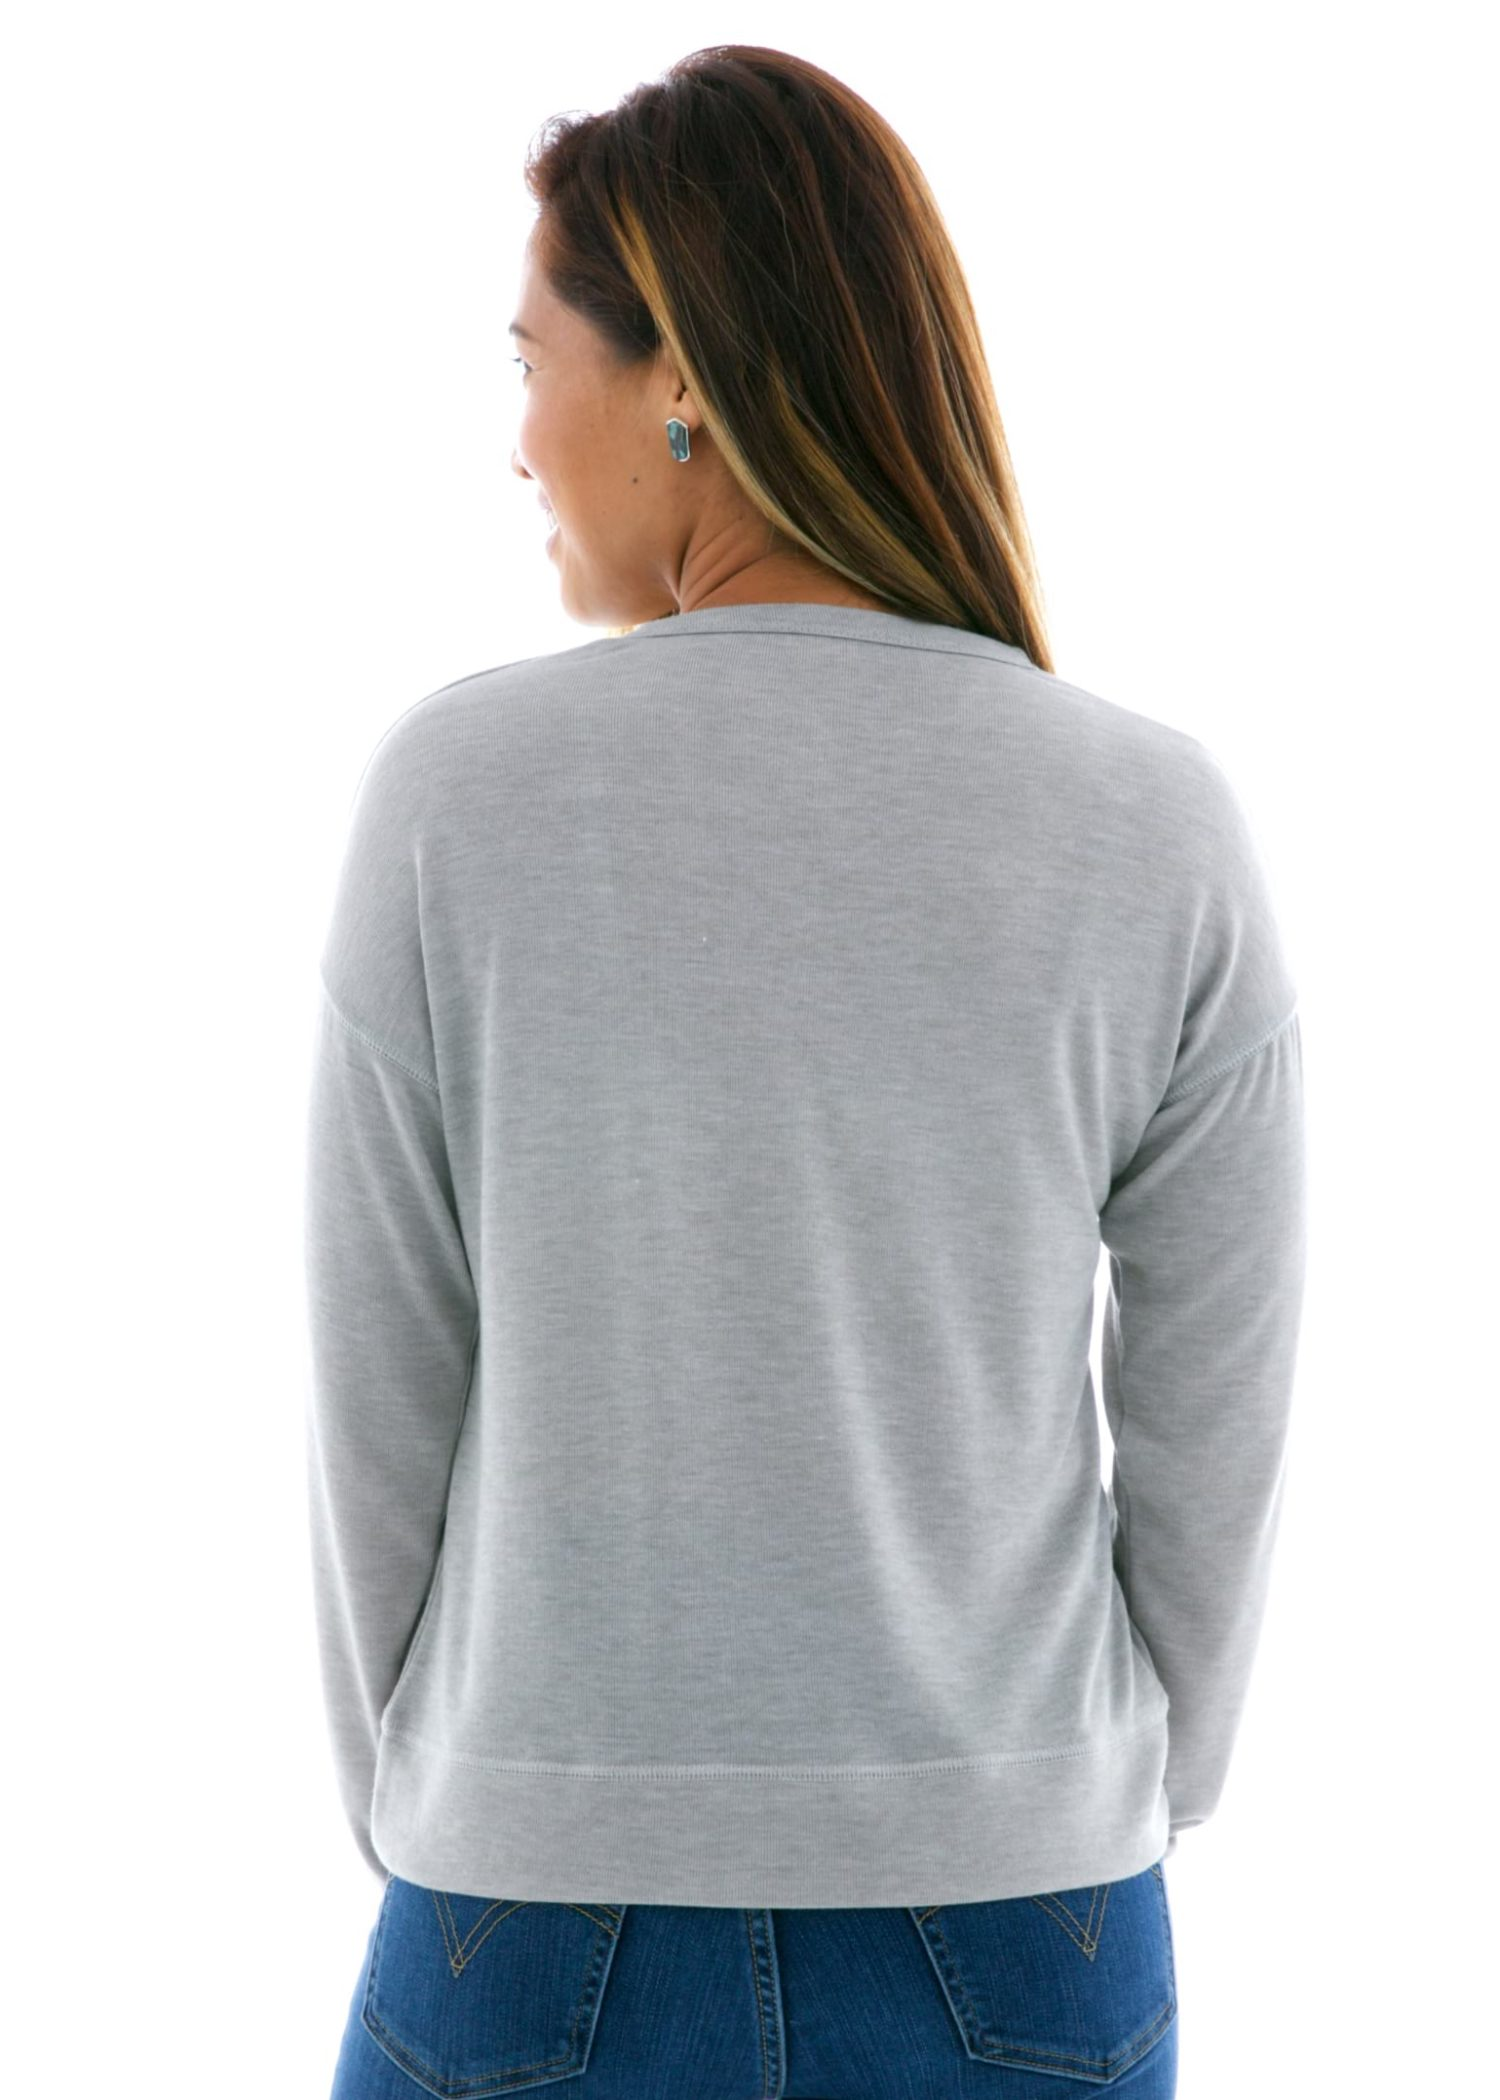 Hacci Slouchy Crop Pullover Back View